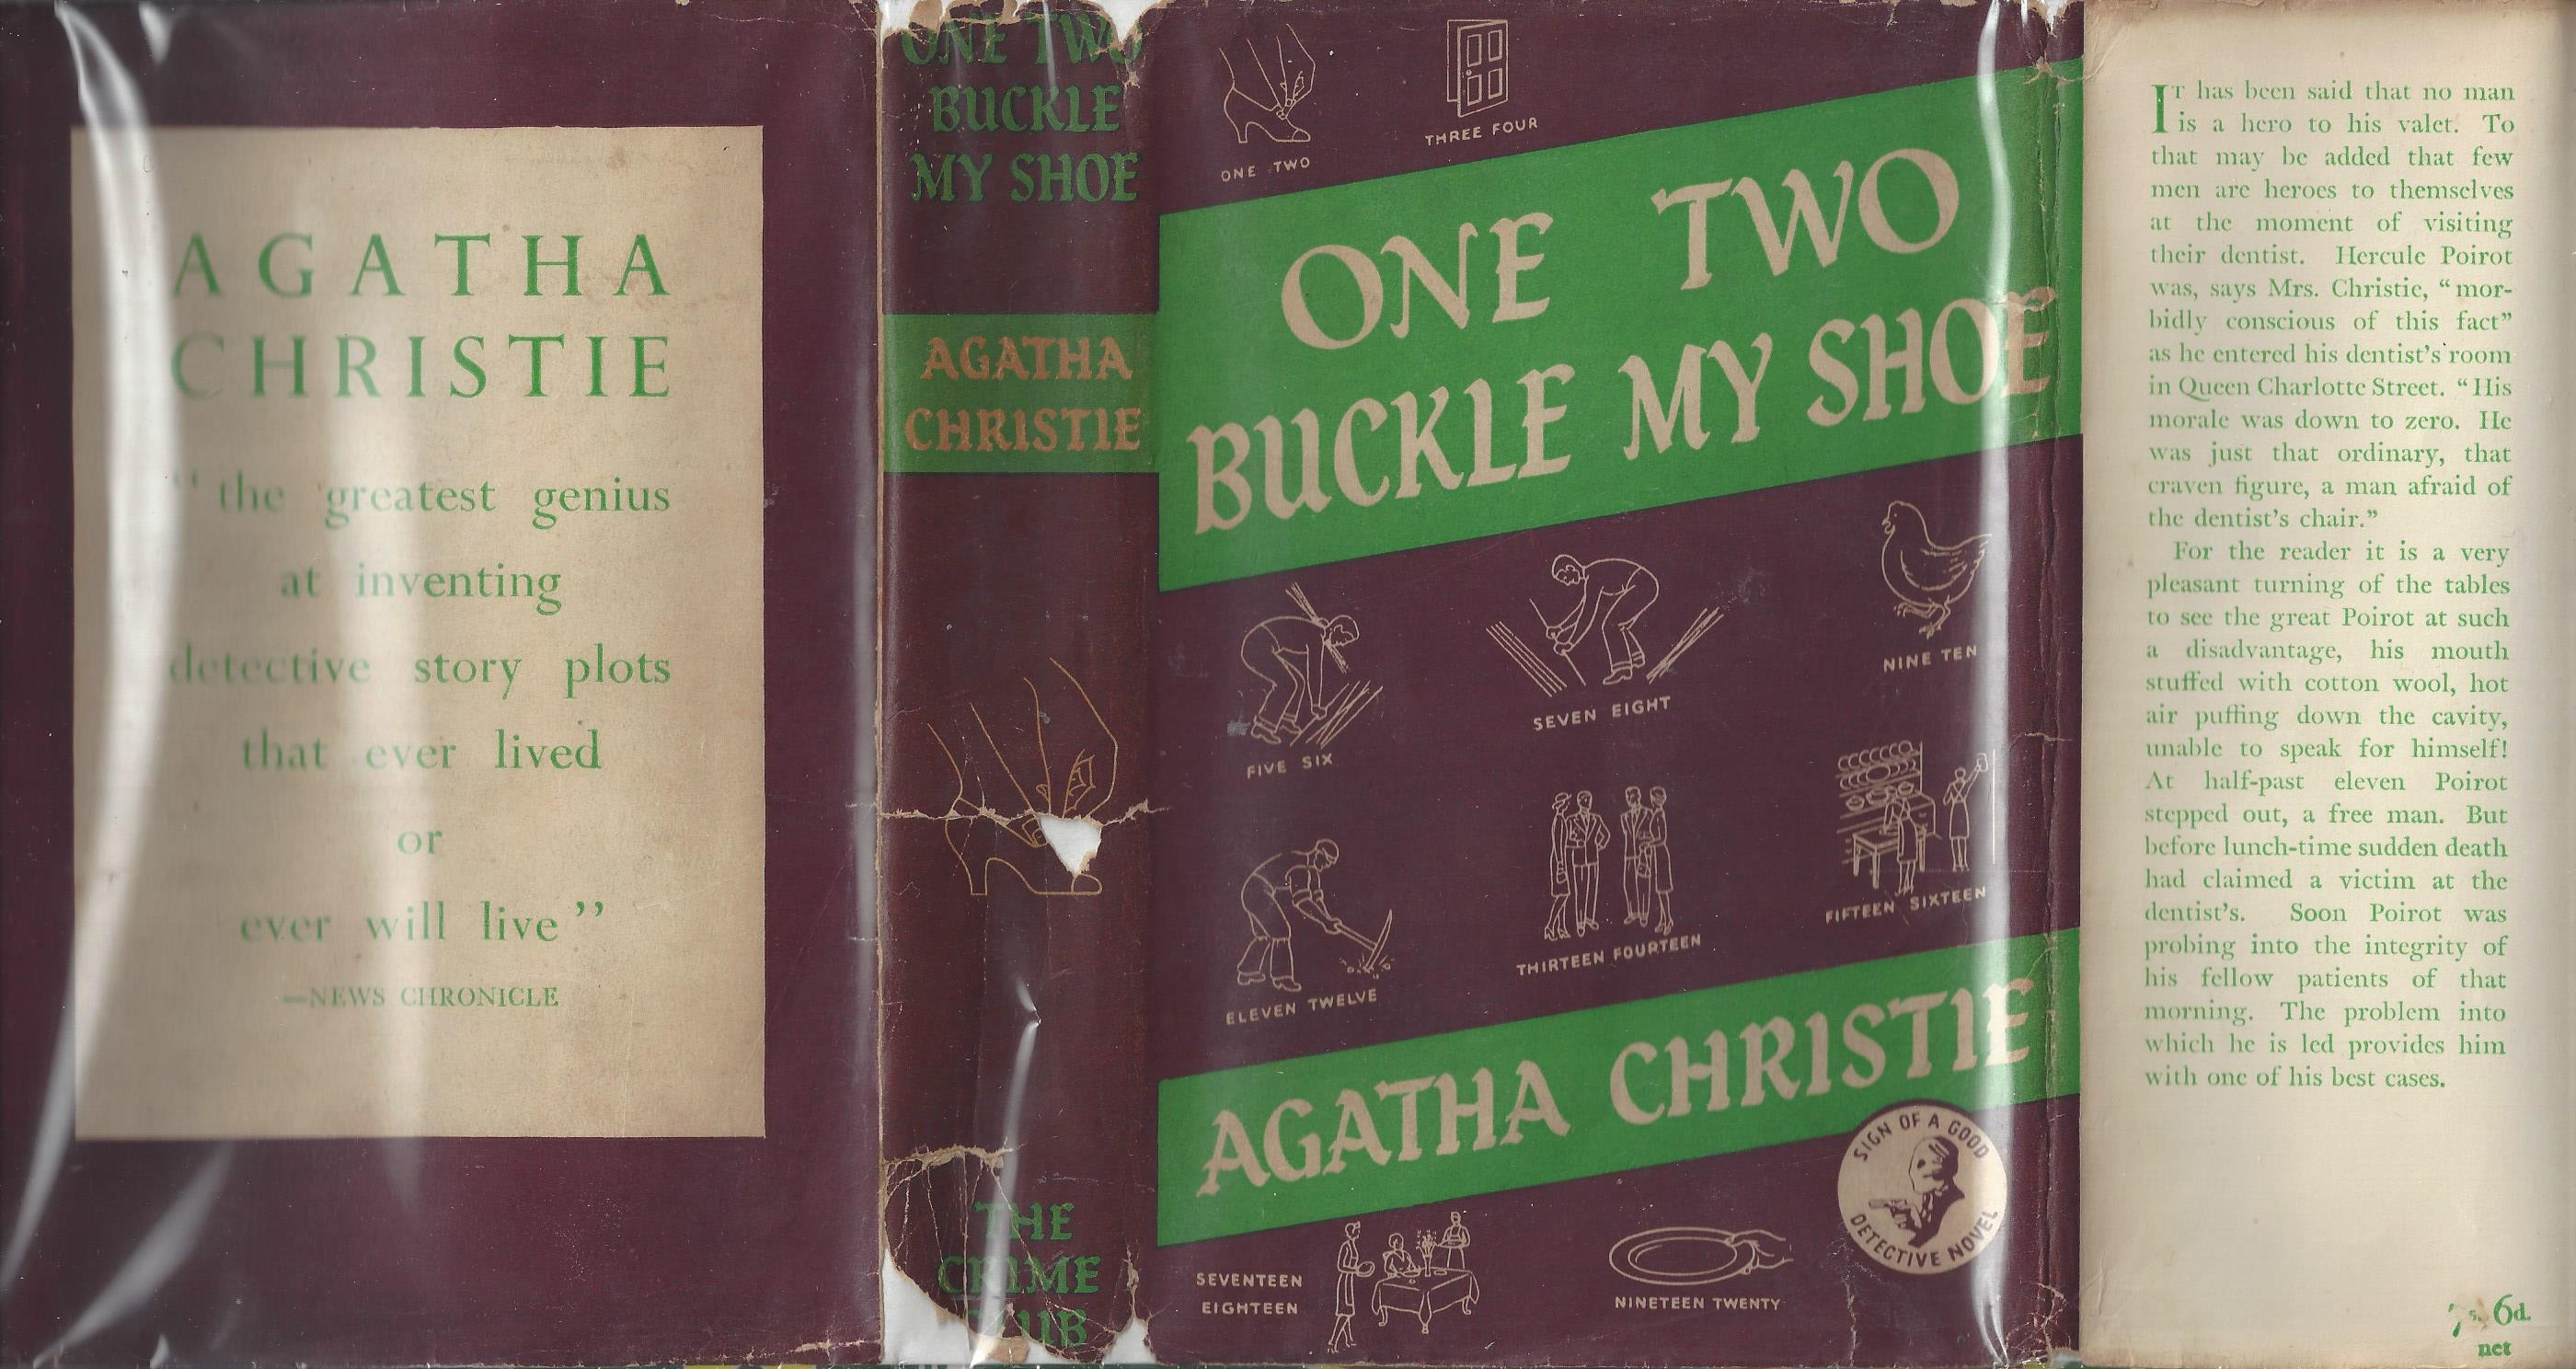 One, Two, Buckle My Shoe - WITH RARE ORIGINAL DUST JACKET - NOT PRICE CLIPPED! Agatha Christie Very Good Hardcover